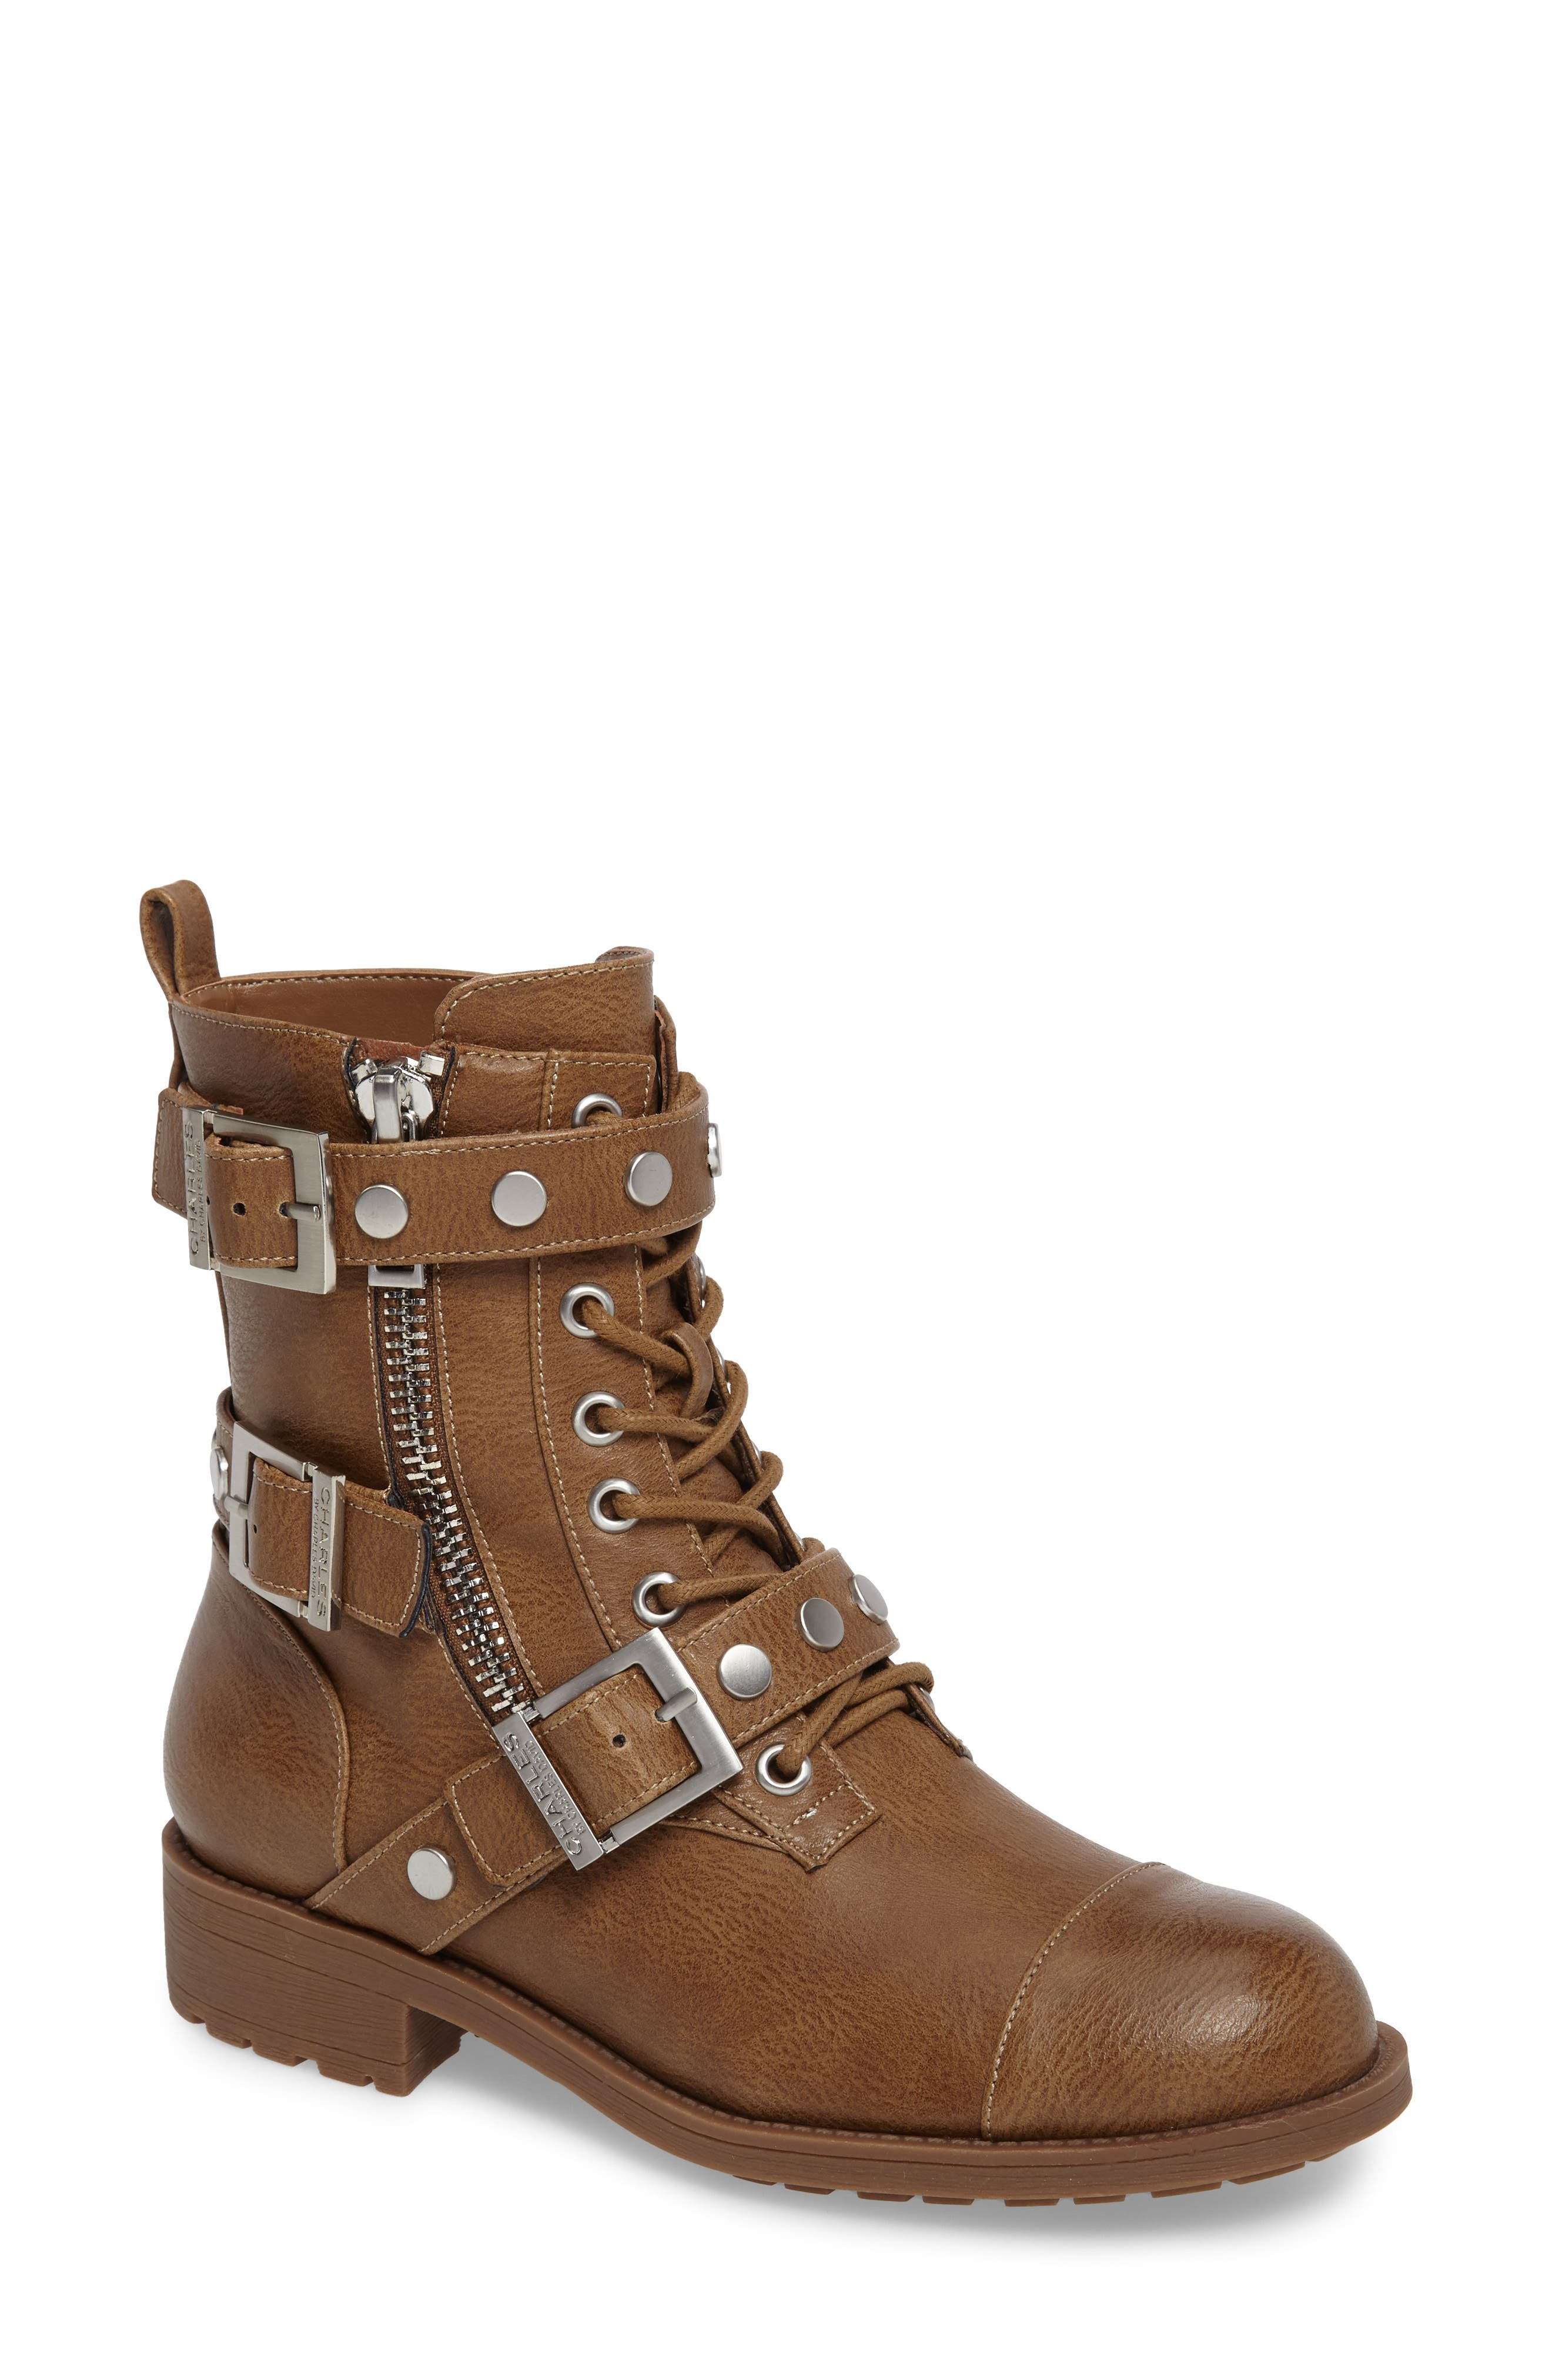 Colt Boot,                         Main,                         color, Dark Taupe Pebble